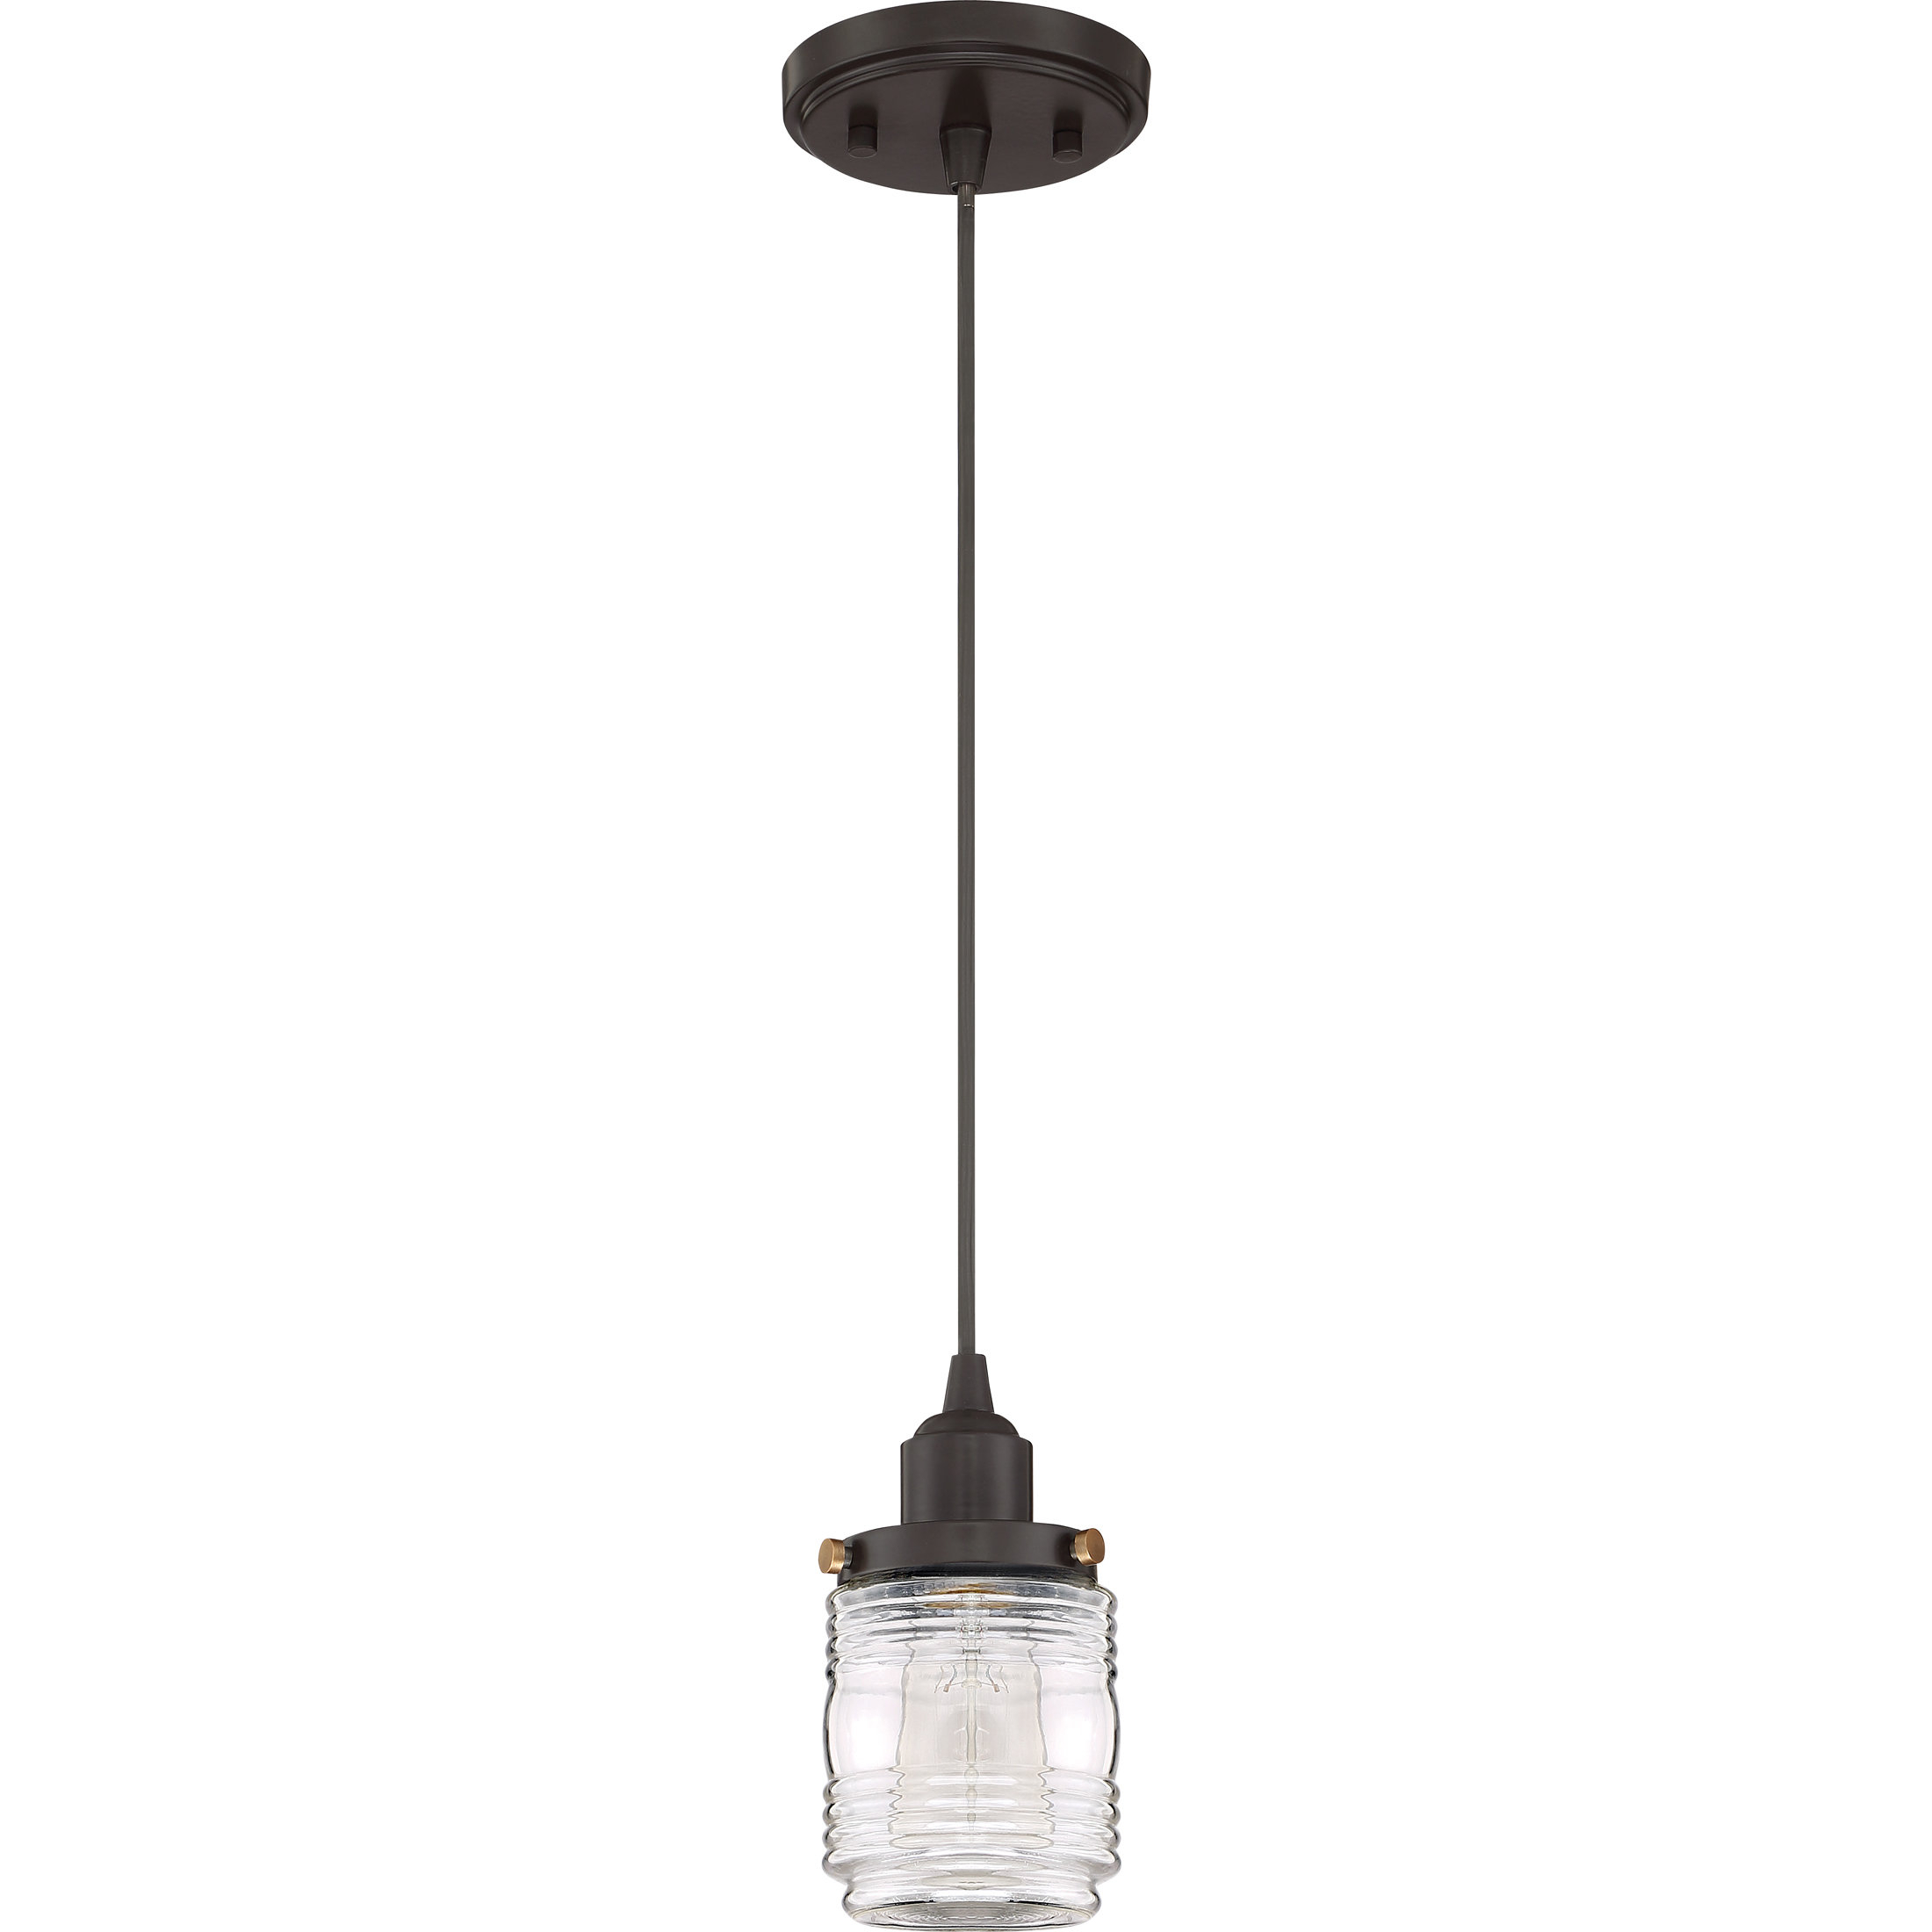 Burgess 1 Light Single Jar Pendant With Famous Sue 1 Light Single Jar Pendants (View 4 of 25)